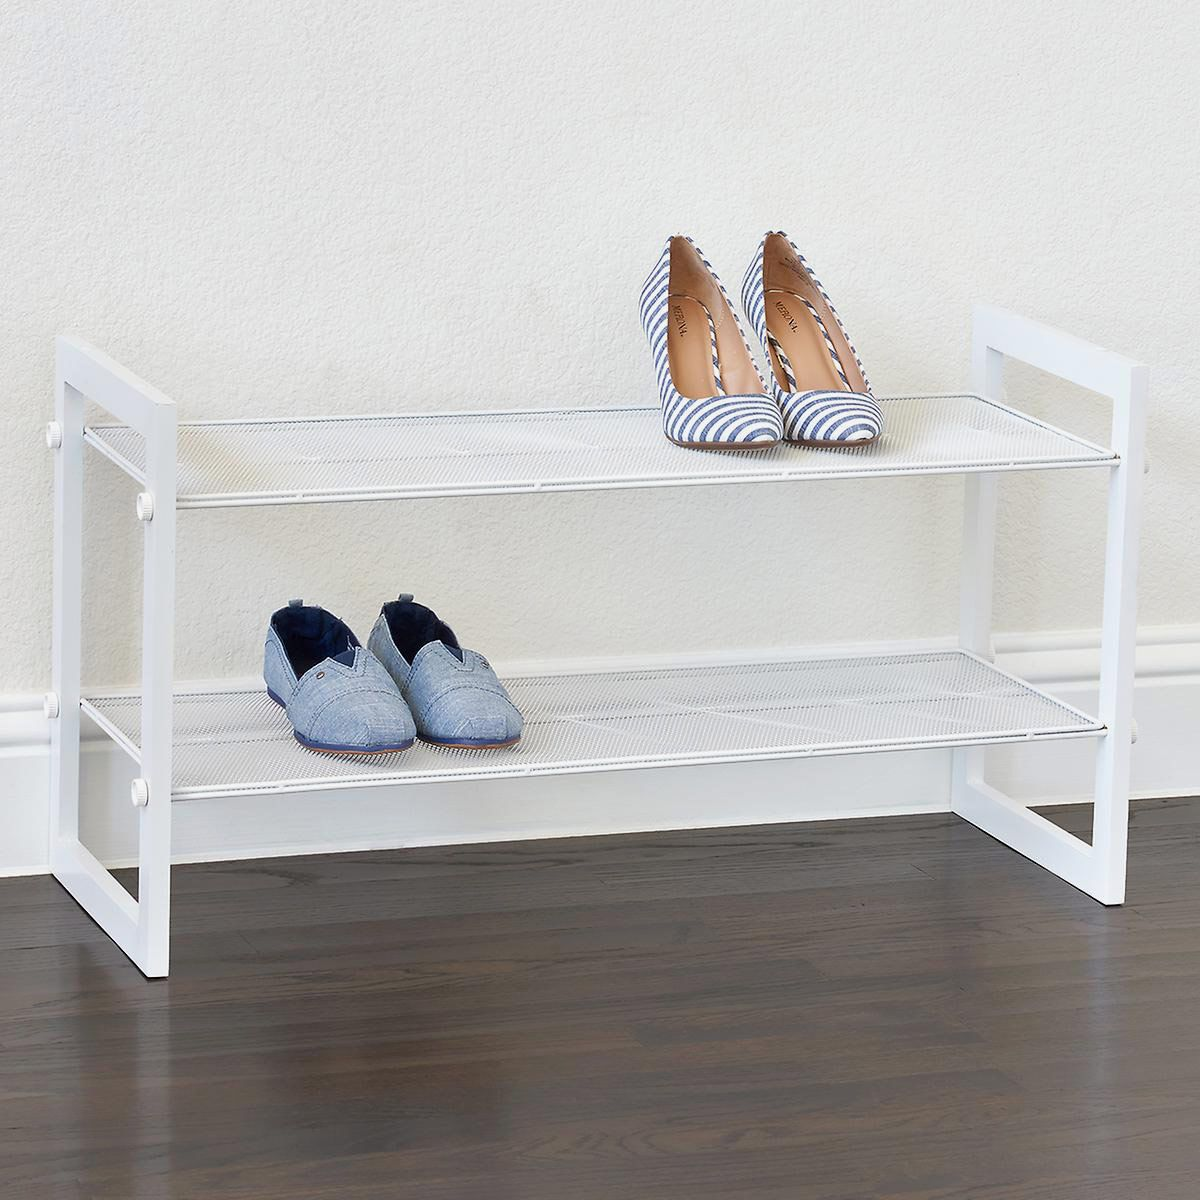 The Container Store White 2-Tier Stackable Mesh Shoe Shelf